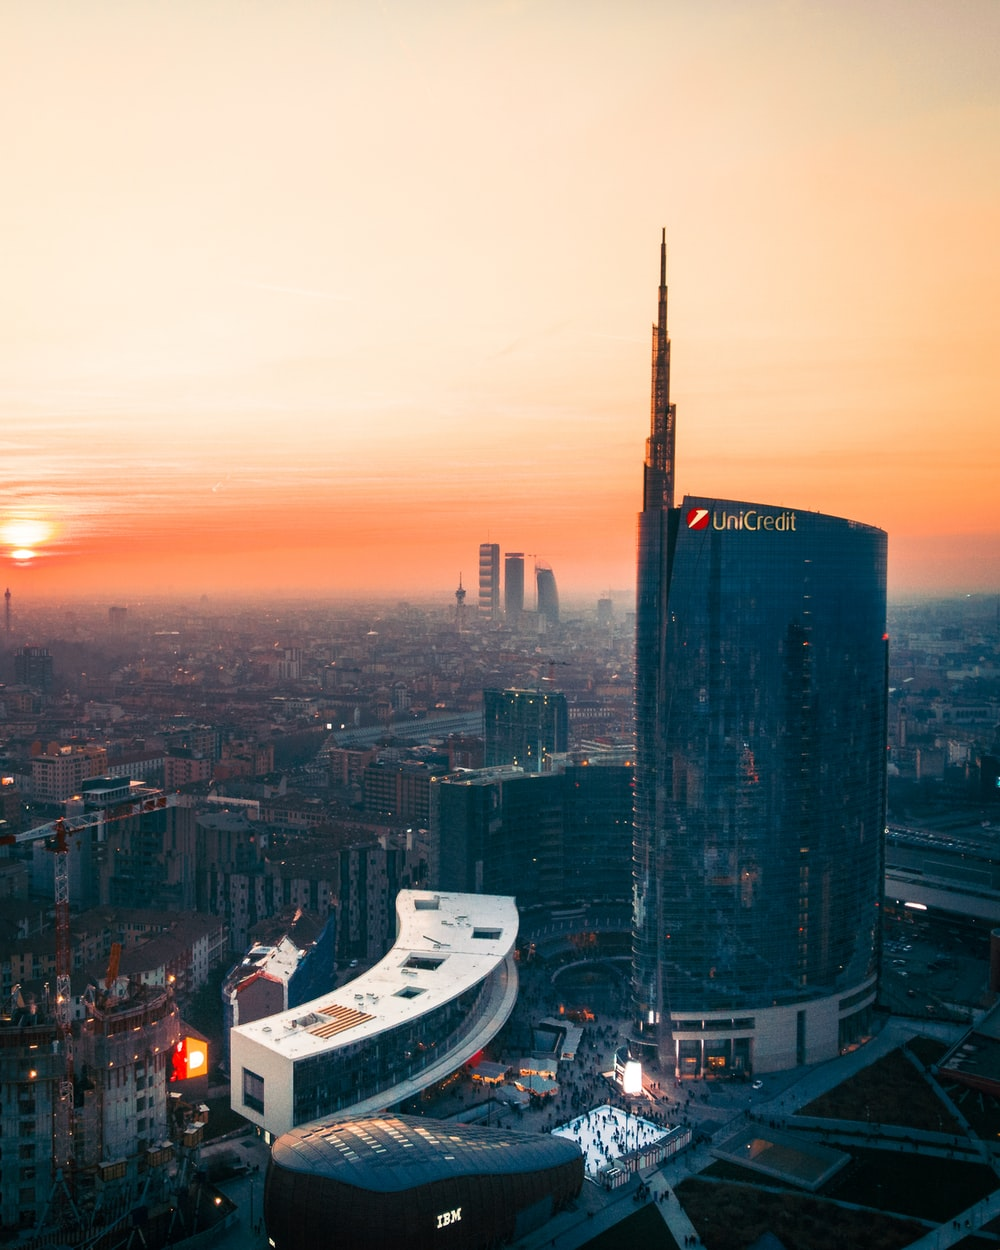 aerial photography of city with high-rise buildings under orange sky